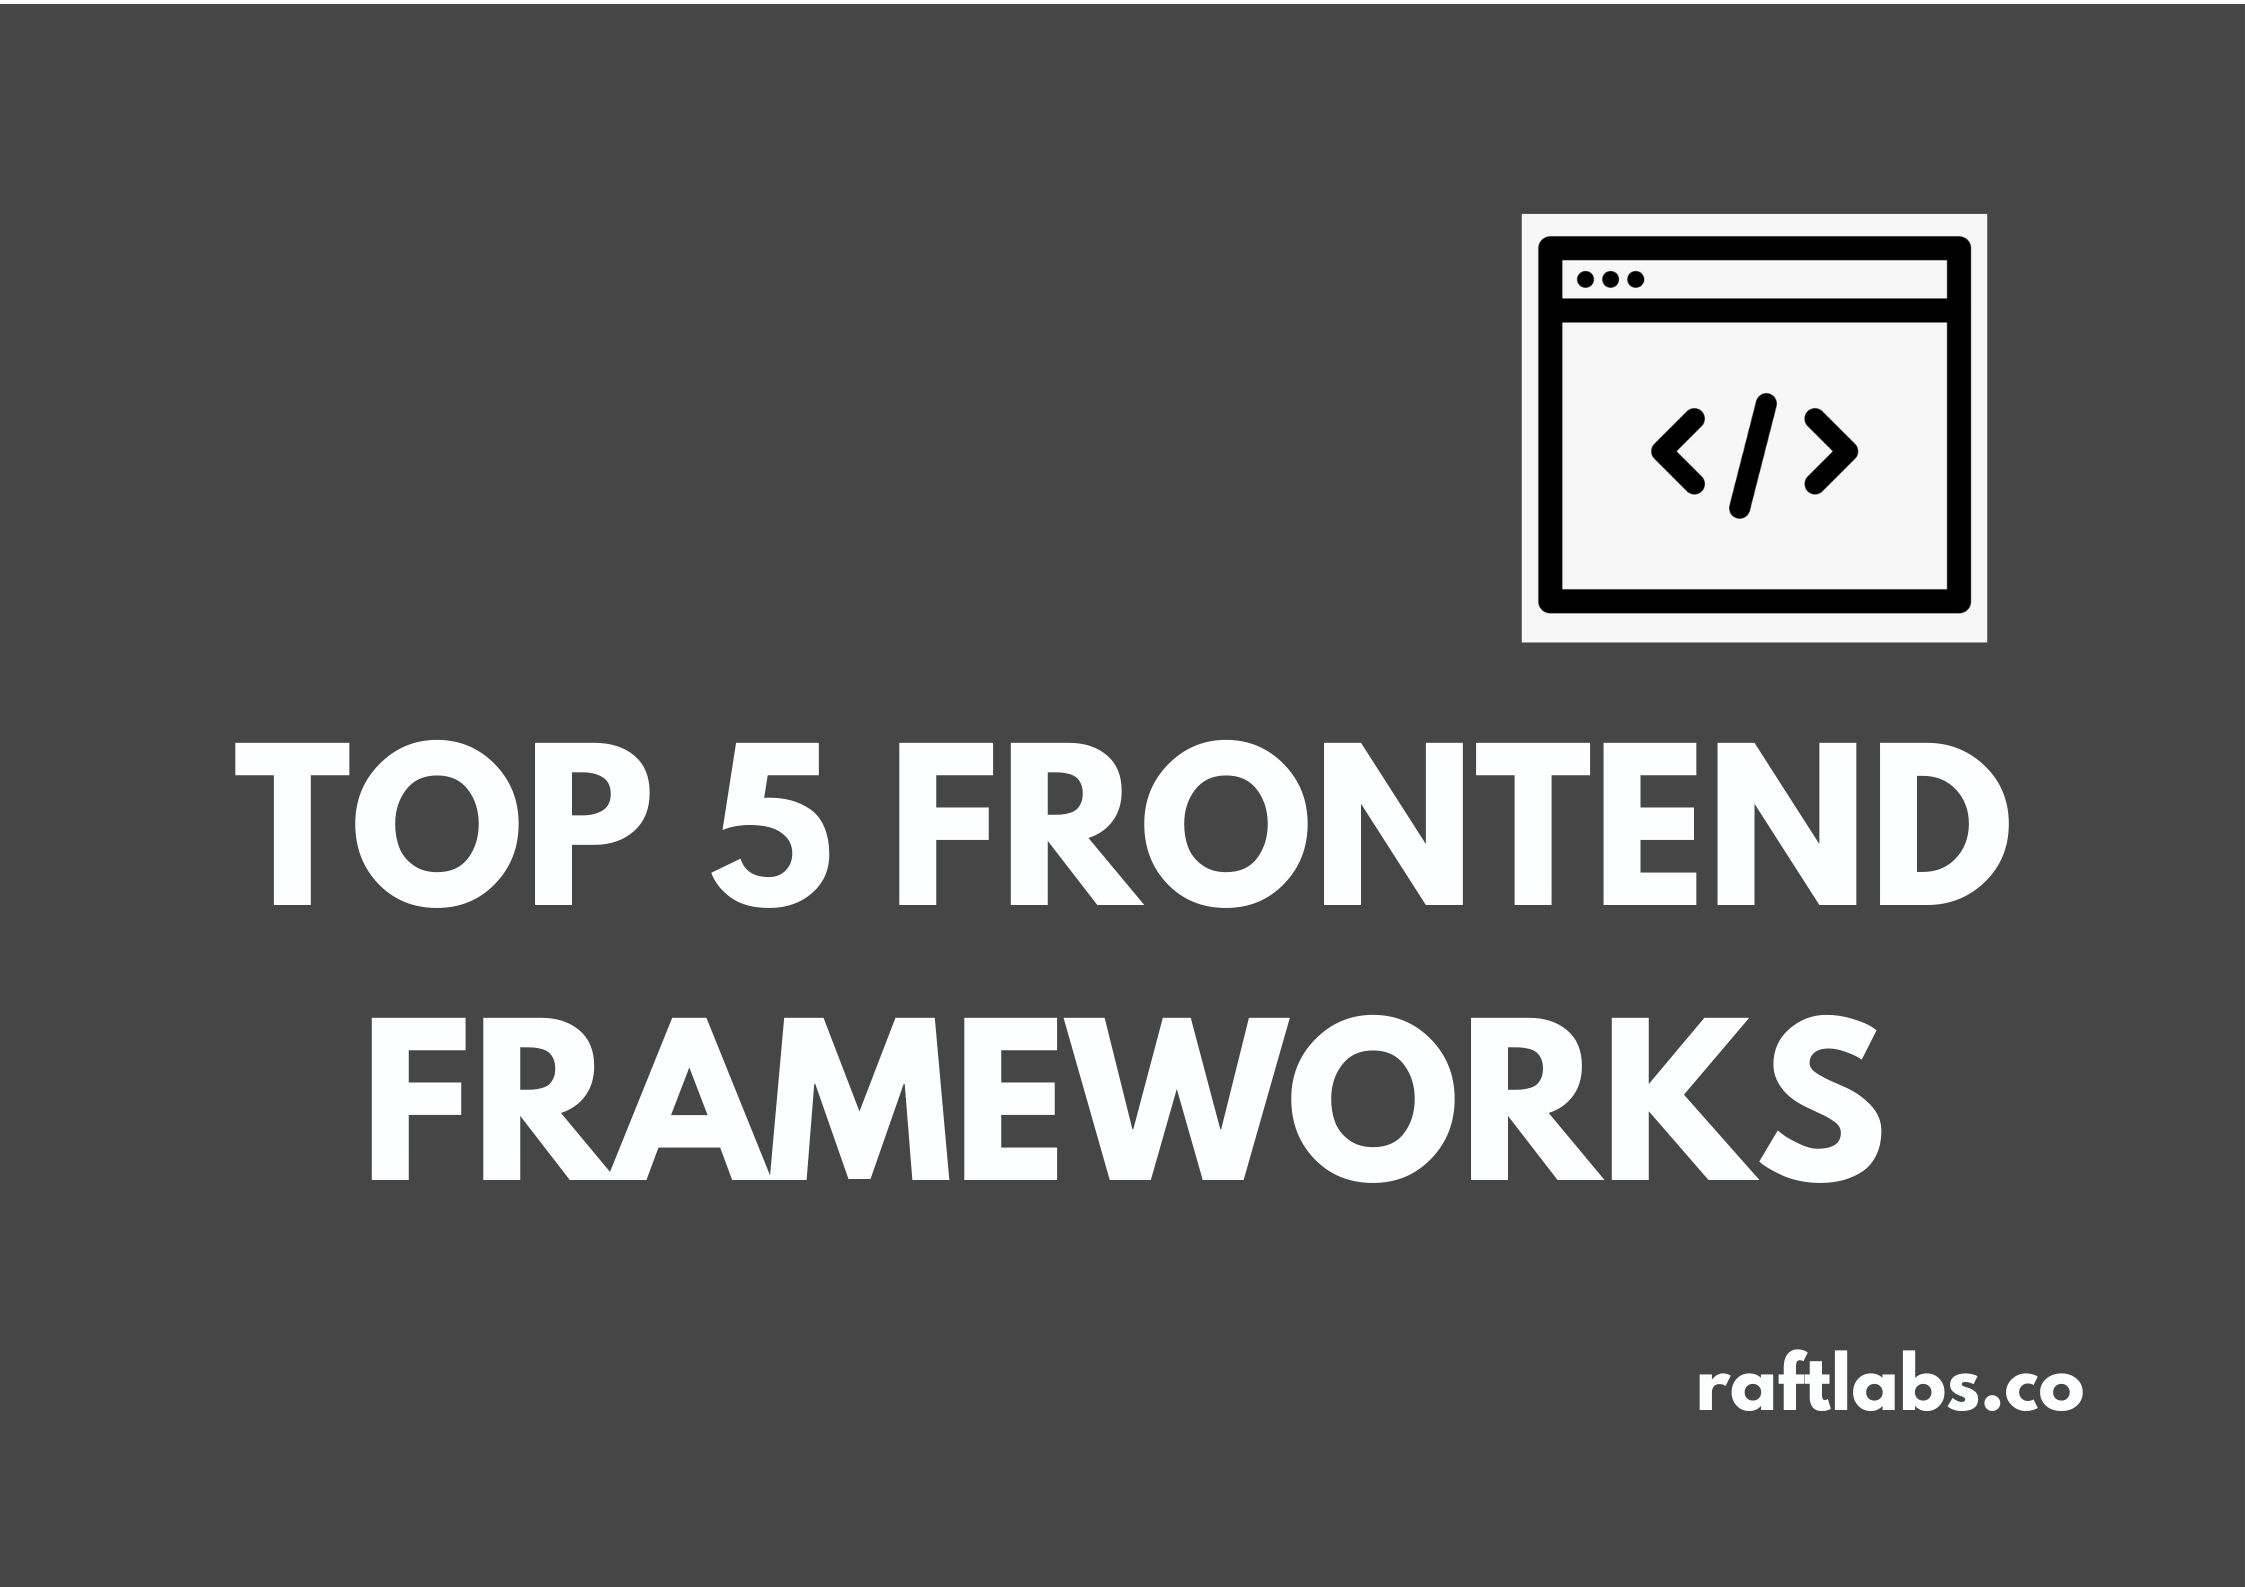 Top 5 Frontend Frameworks with a frontend development image